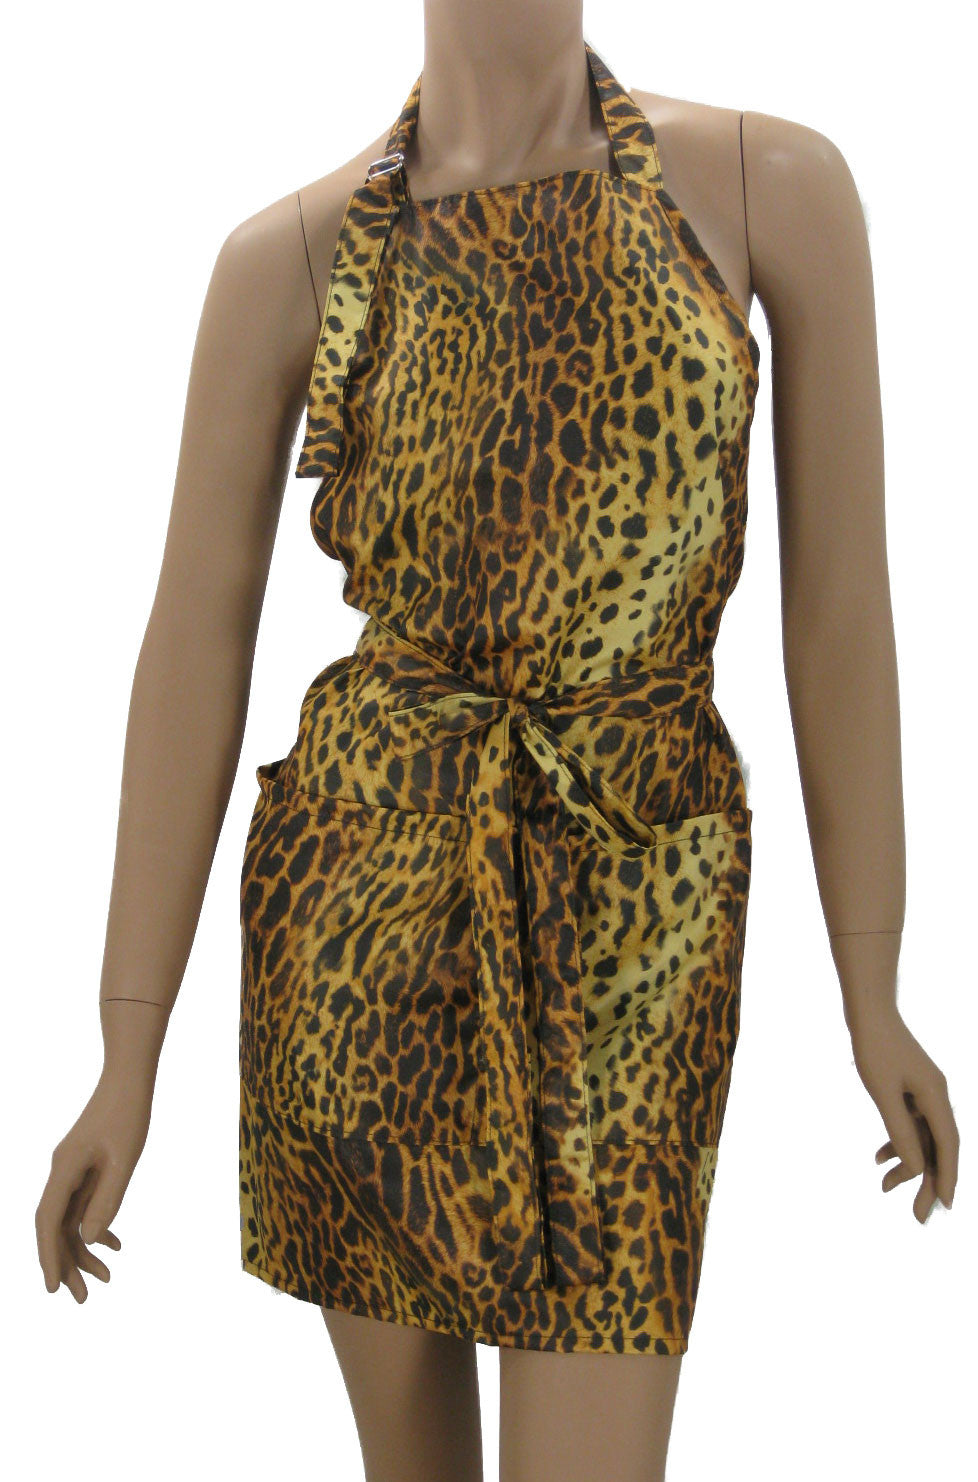 cheetah hair stylist salon apron